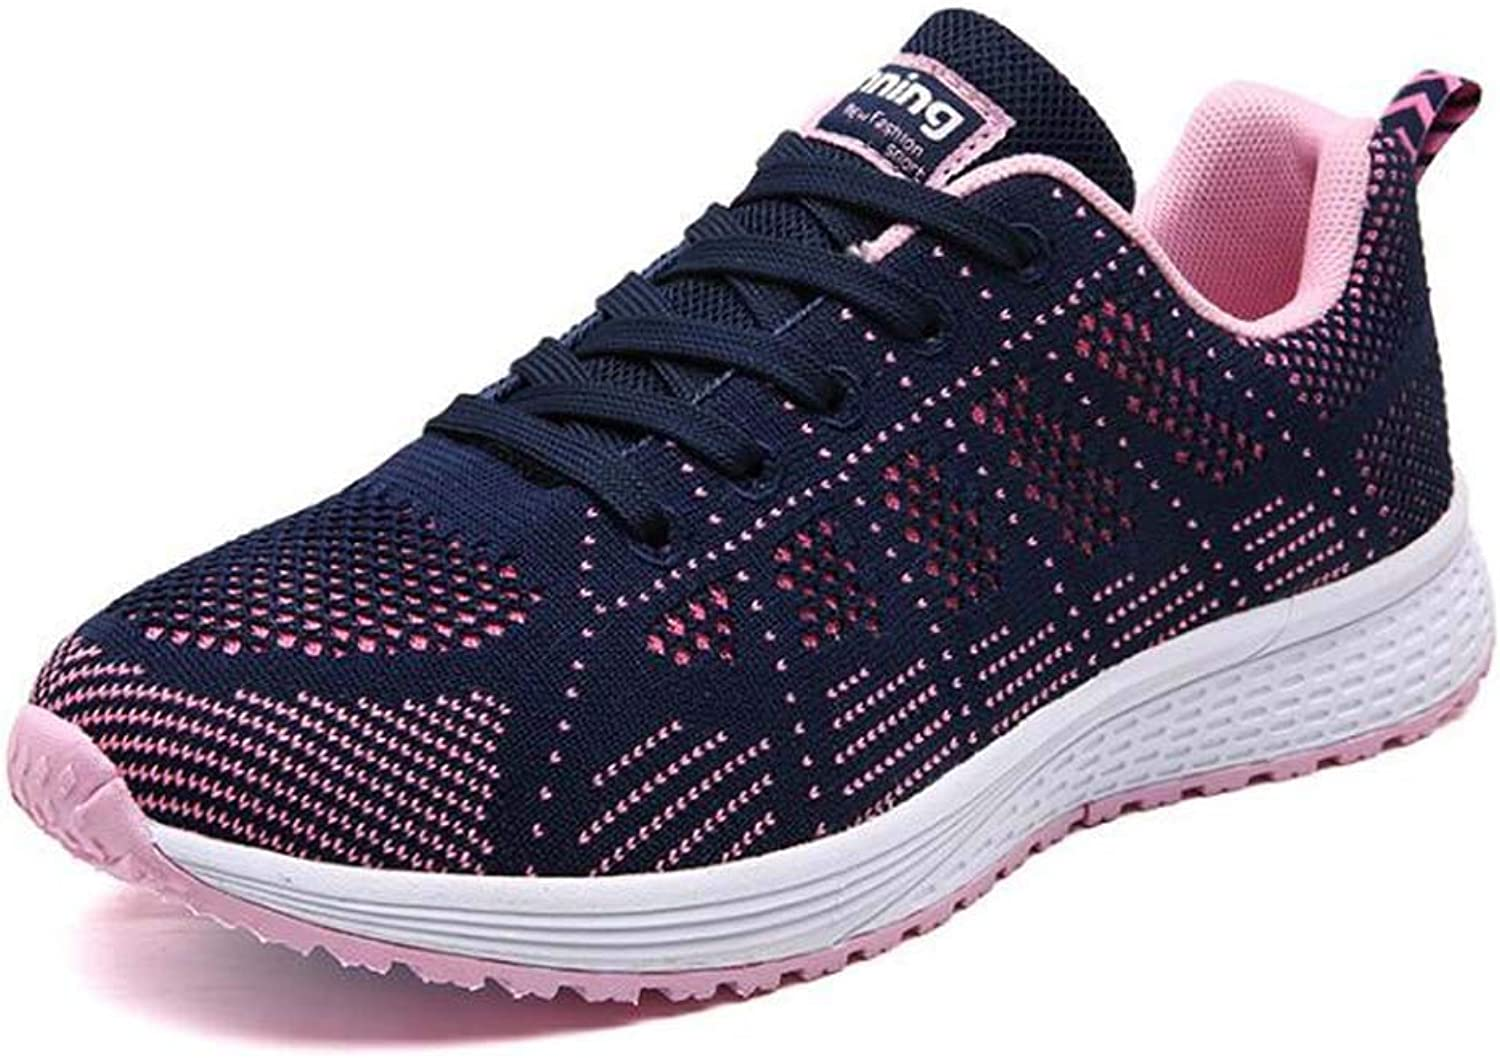 GAOPF Women Outdoor Casual Sports Running shoes Lightweight Fashion Breathable Athletic Mesh Sneakers bluee